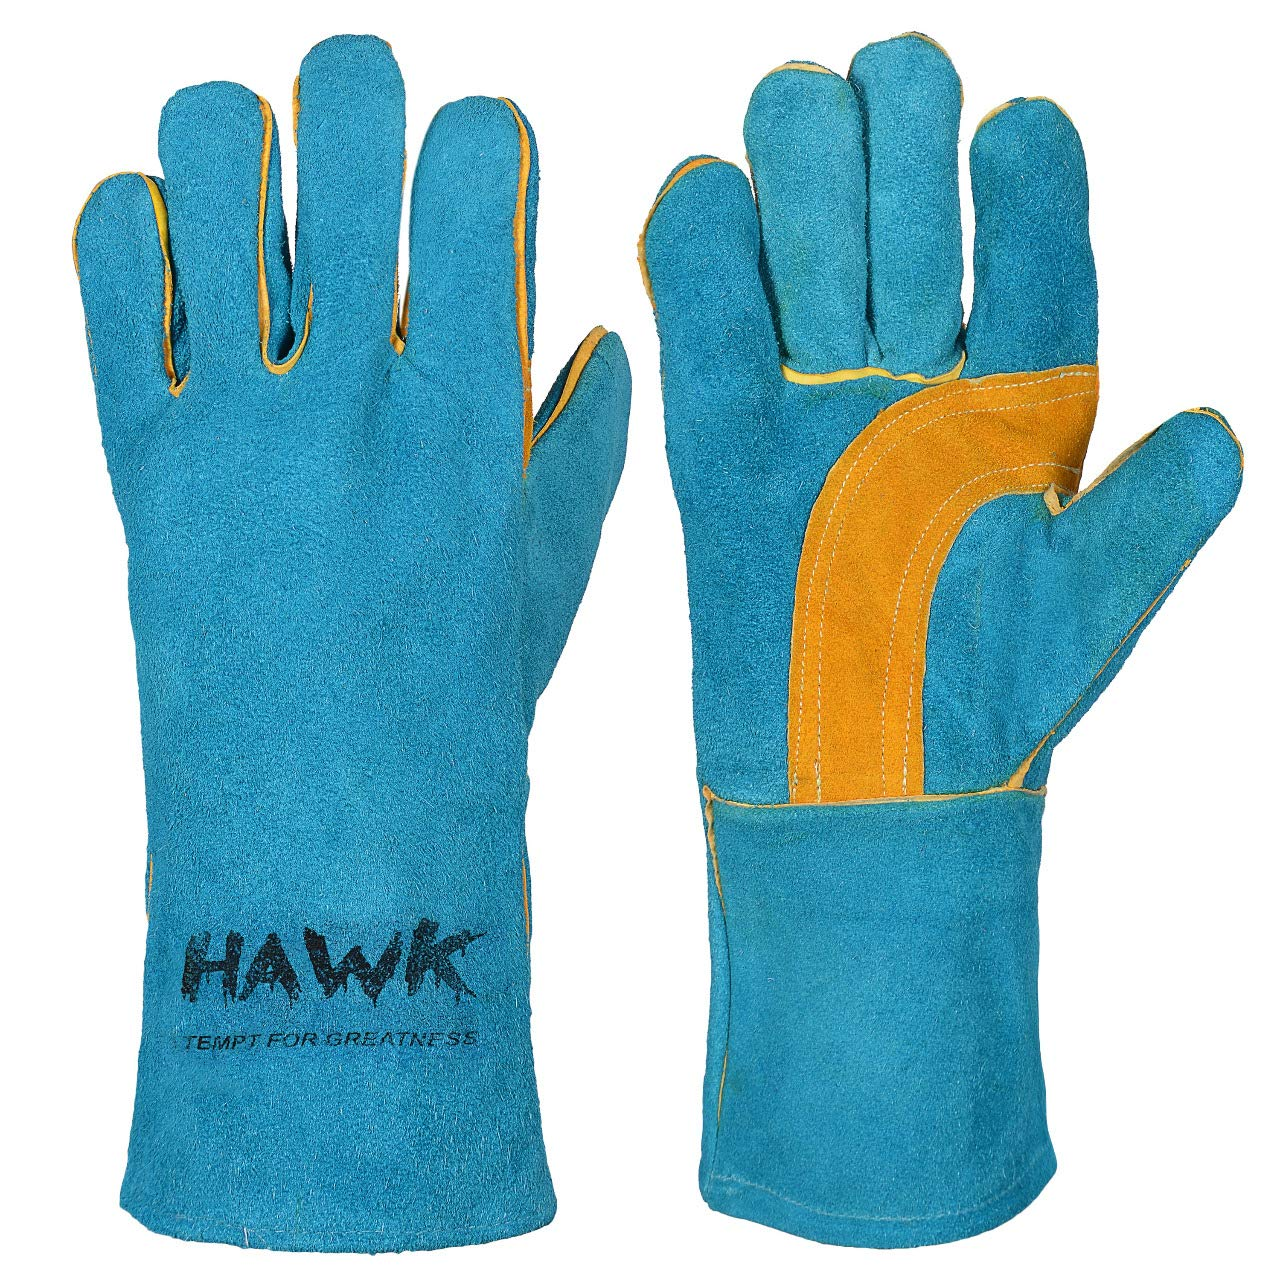 Leather Welding Gloves FIRE HEAT RESISTANT Baking Barbecue oven BBQ Grill Pot Holder Welders Gauntlets Rigger Fireplace Outdoor Working Work Gloves Mitts Blue 14